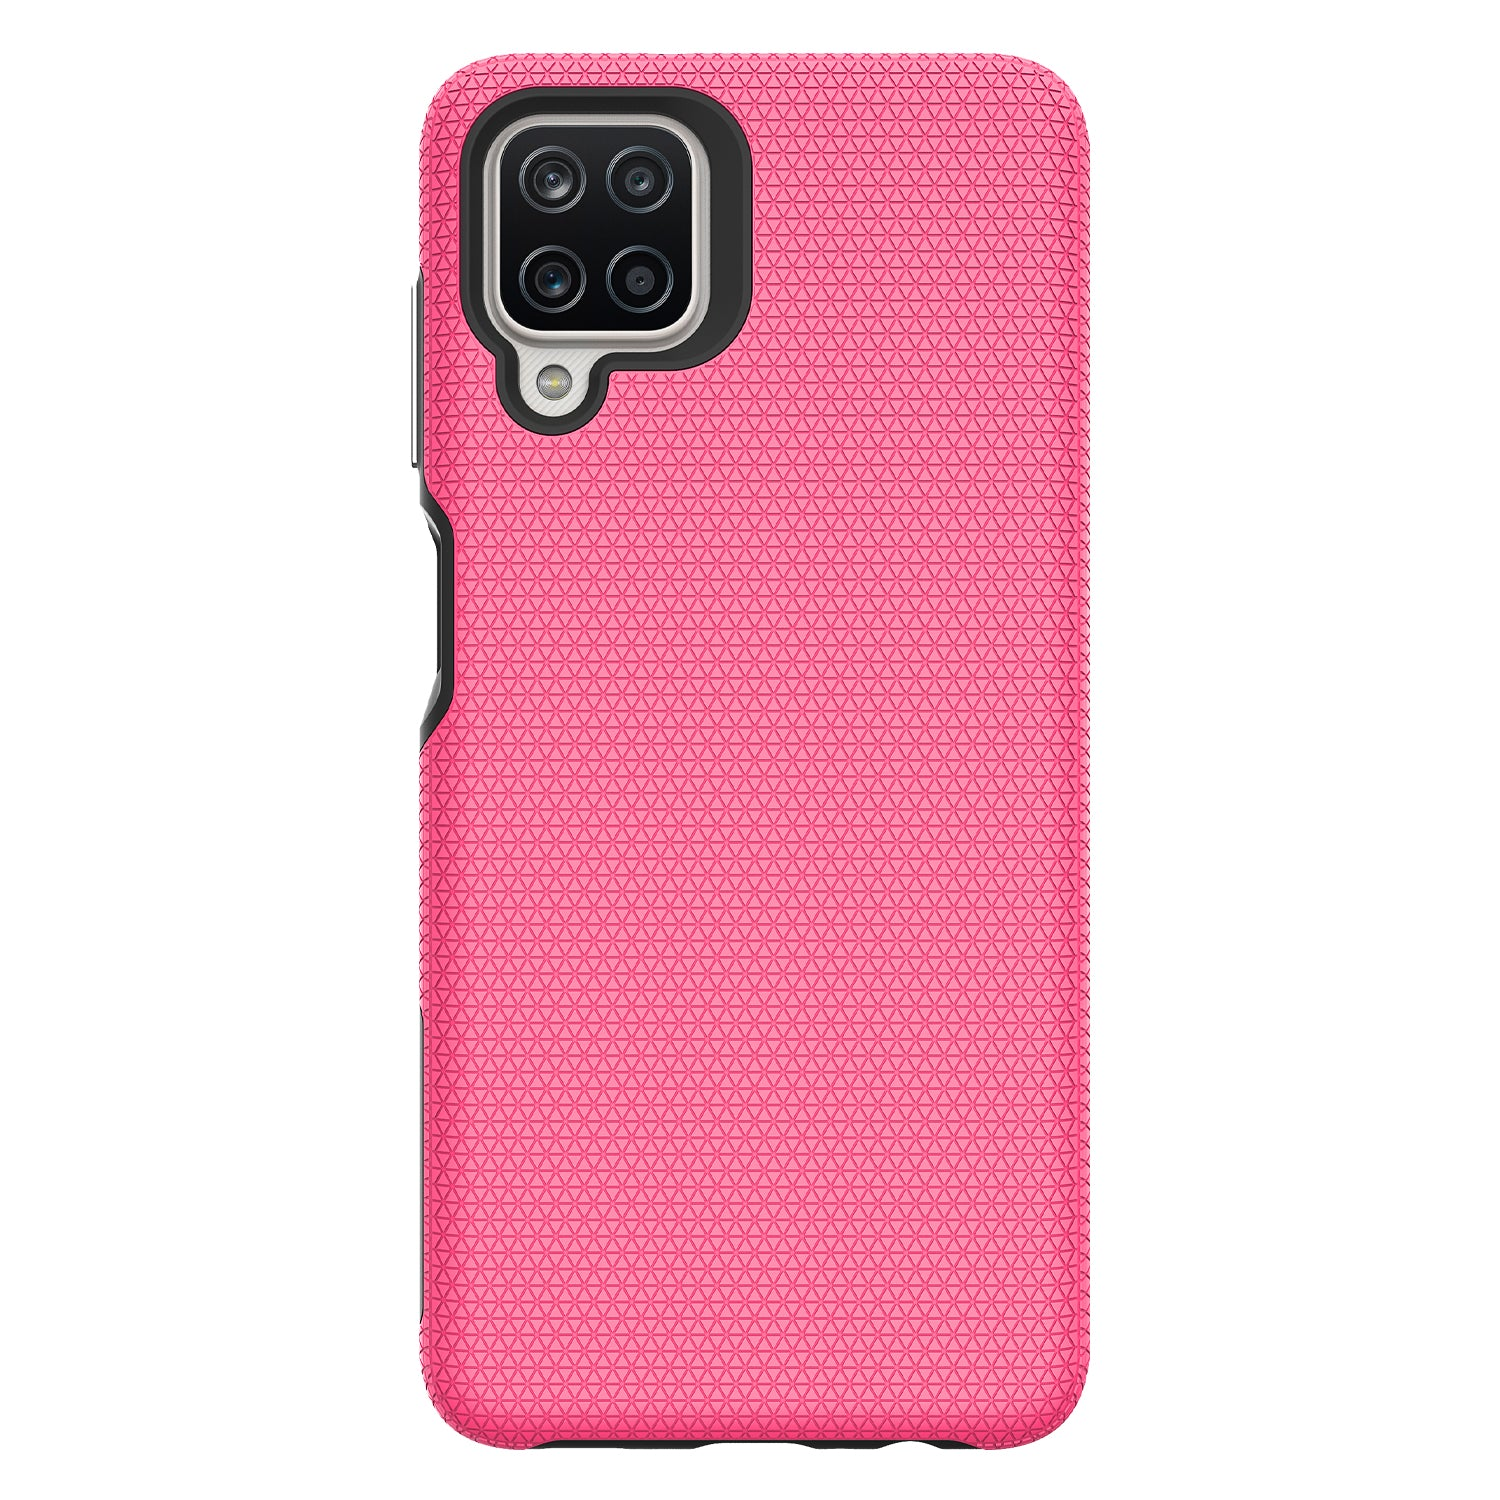 Copy of Samsung A12 5G Dot Texture Case